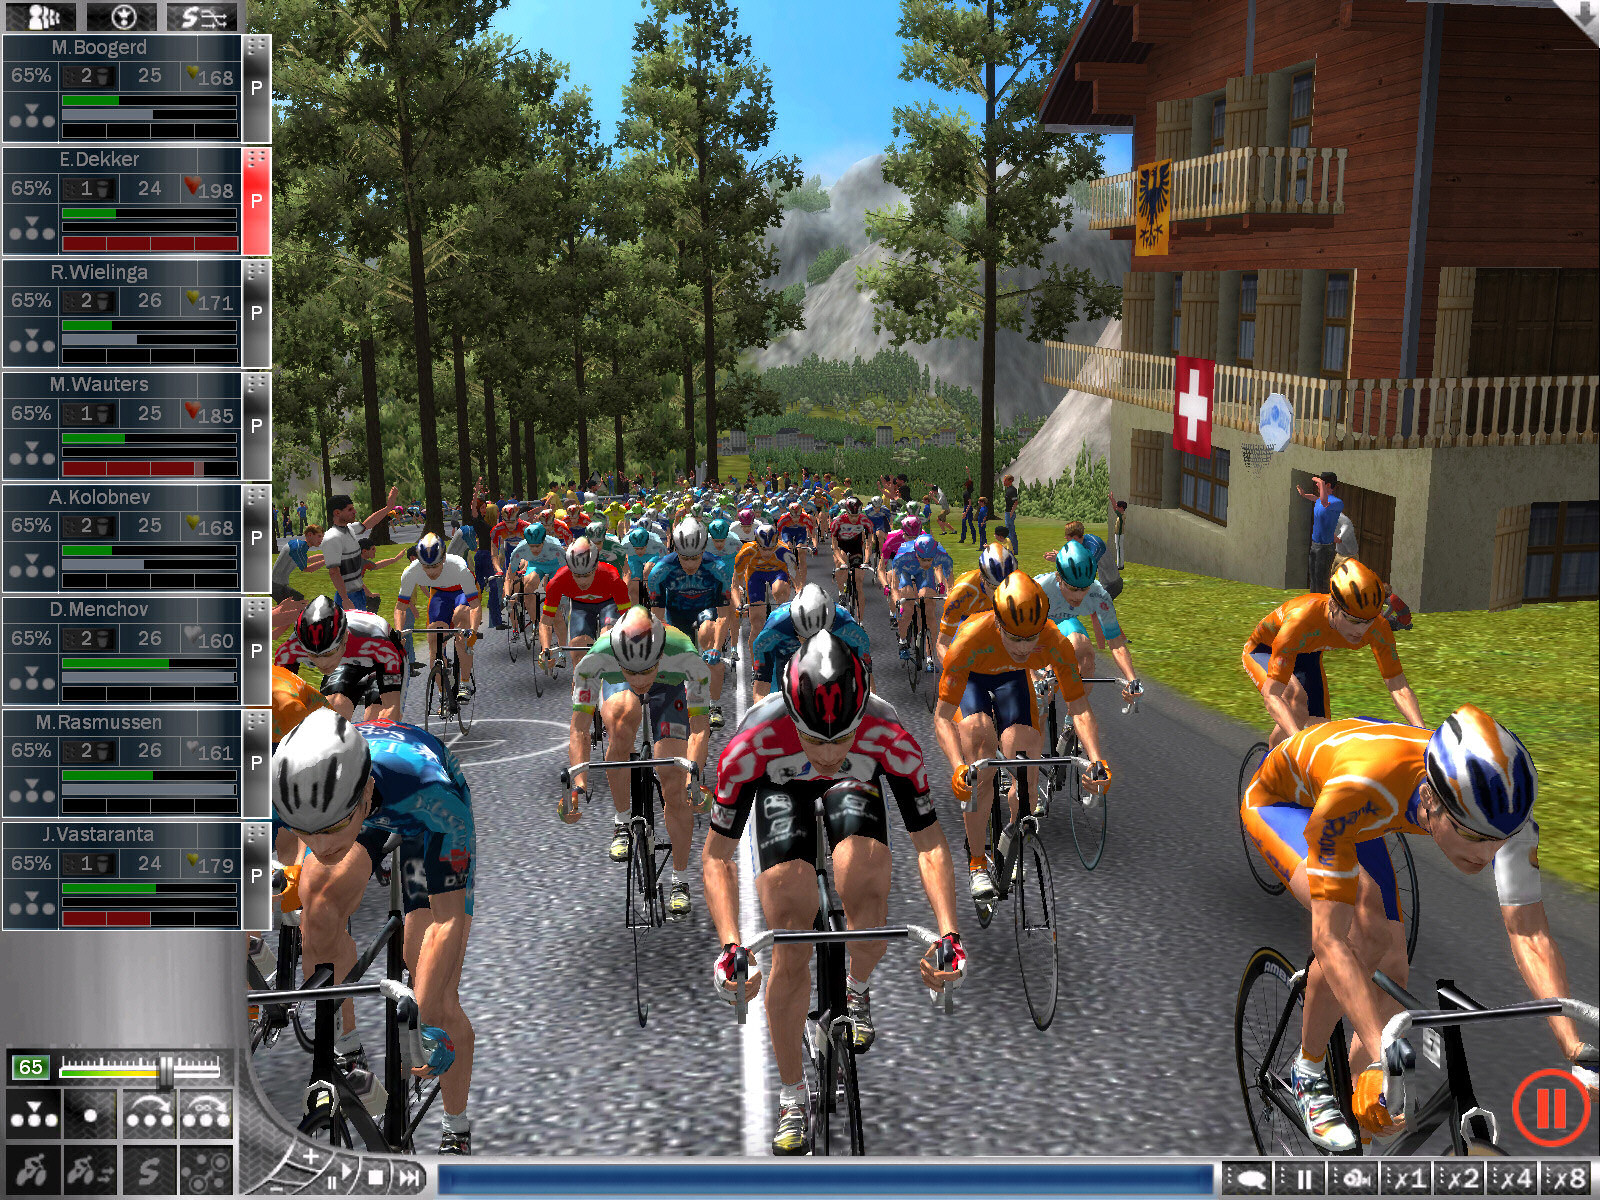 Pro Cycling Manager Patch 1.0.1.6